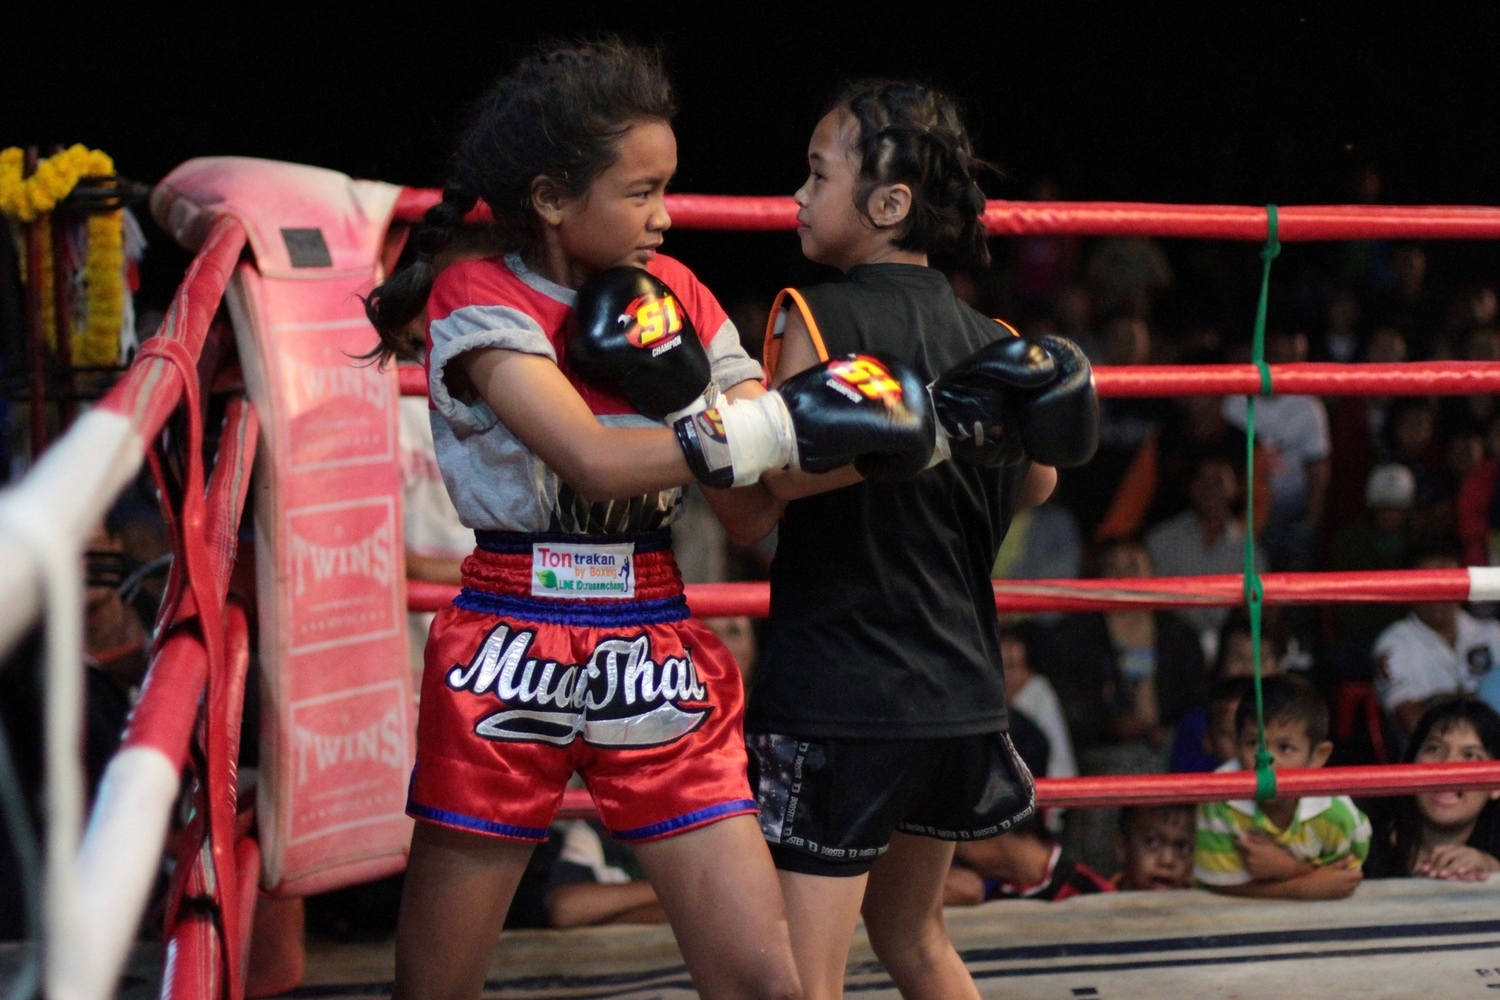 highfrequency fights and the children of muay thai vice